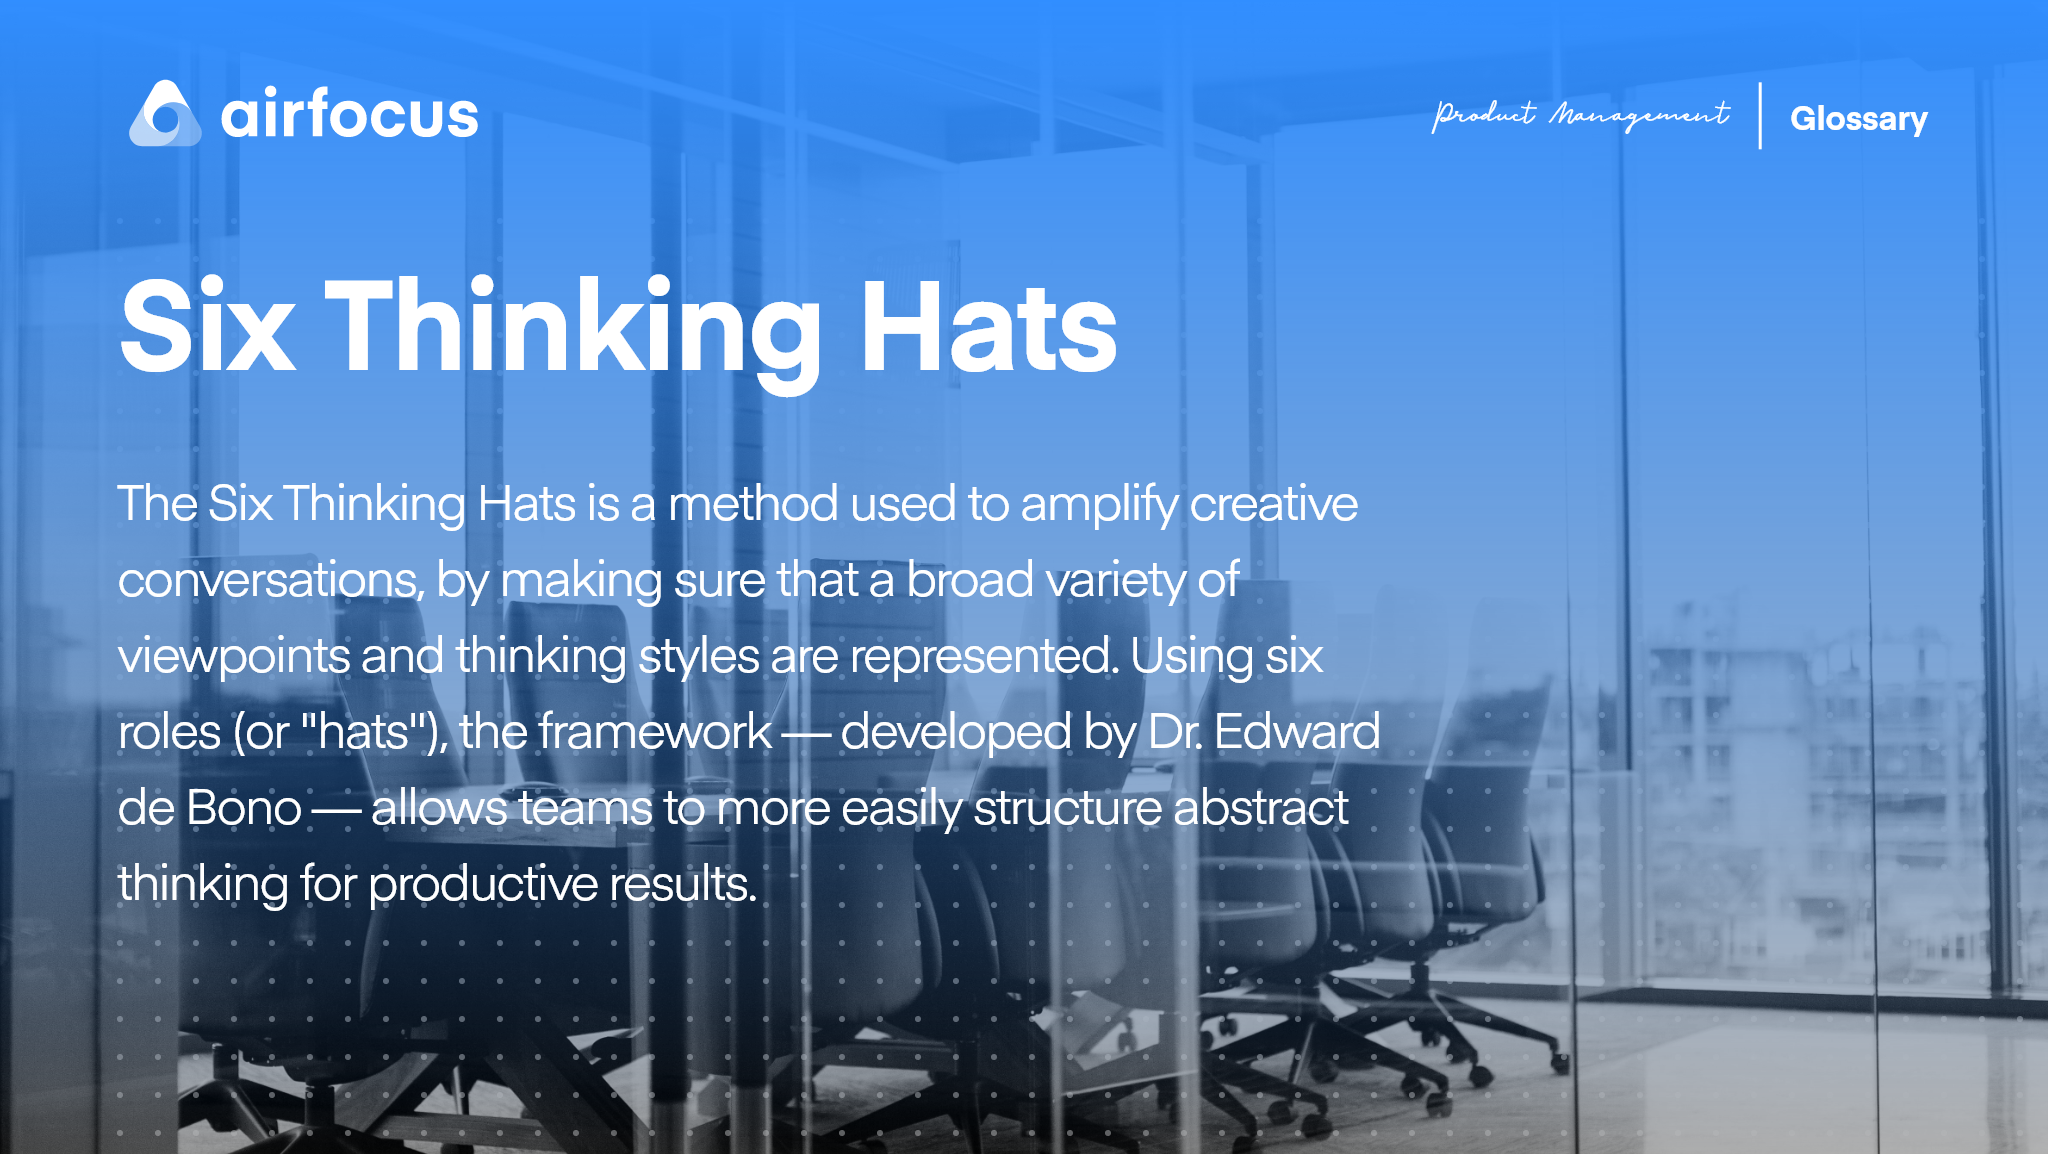 What Are The Six Thinking Hats?